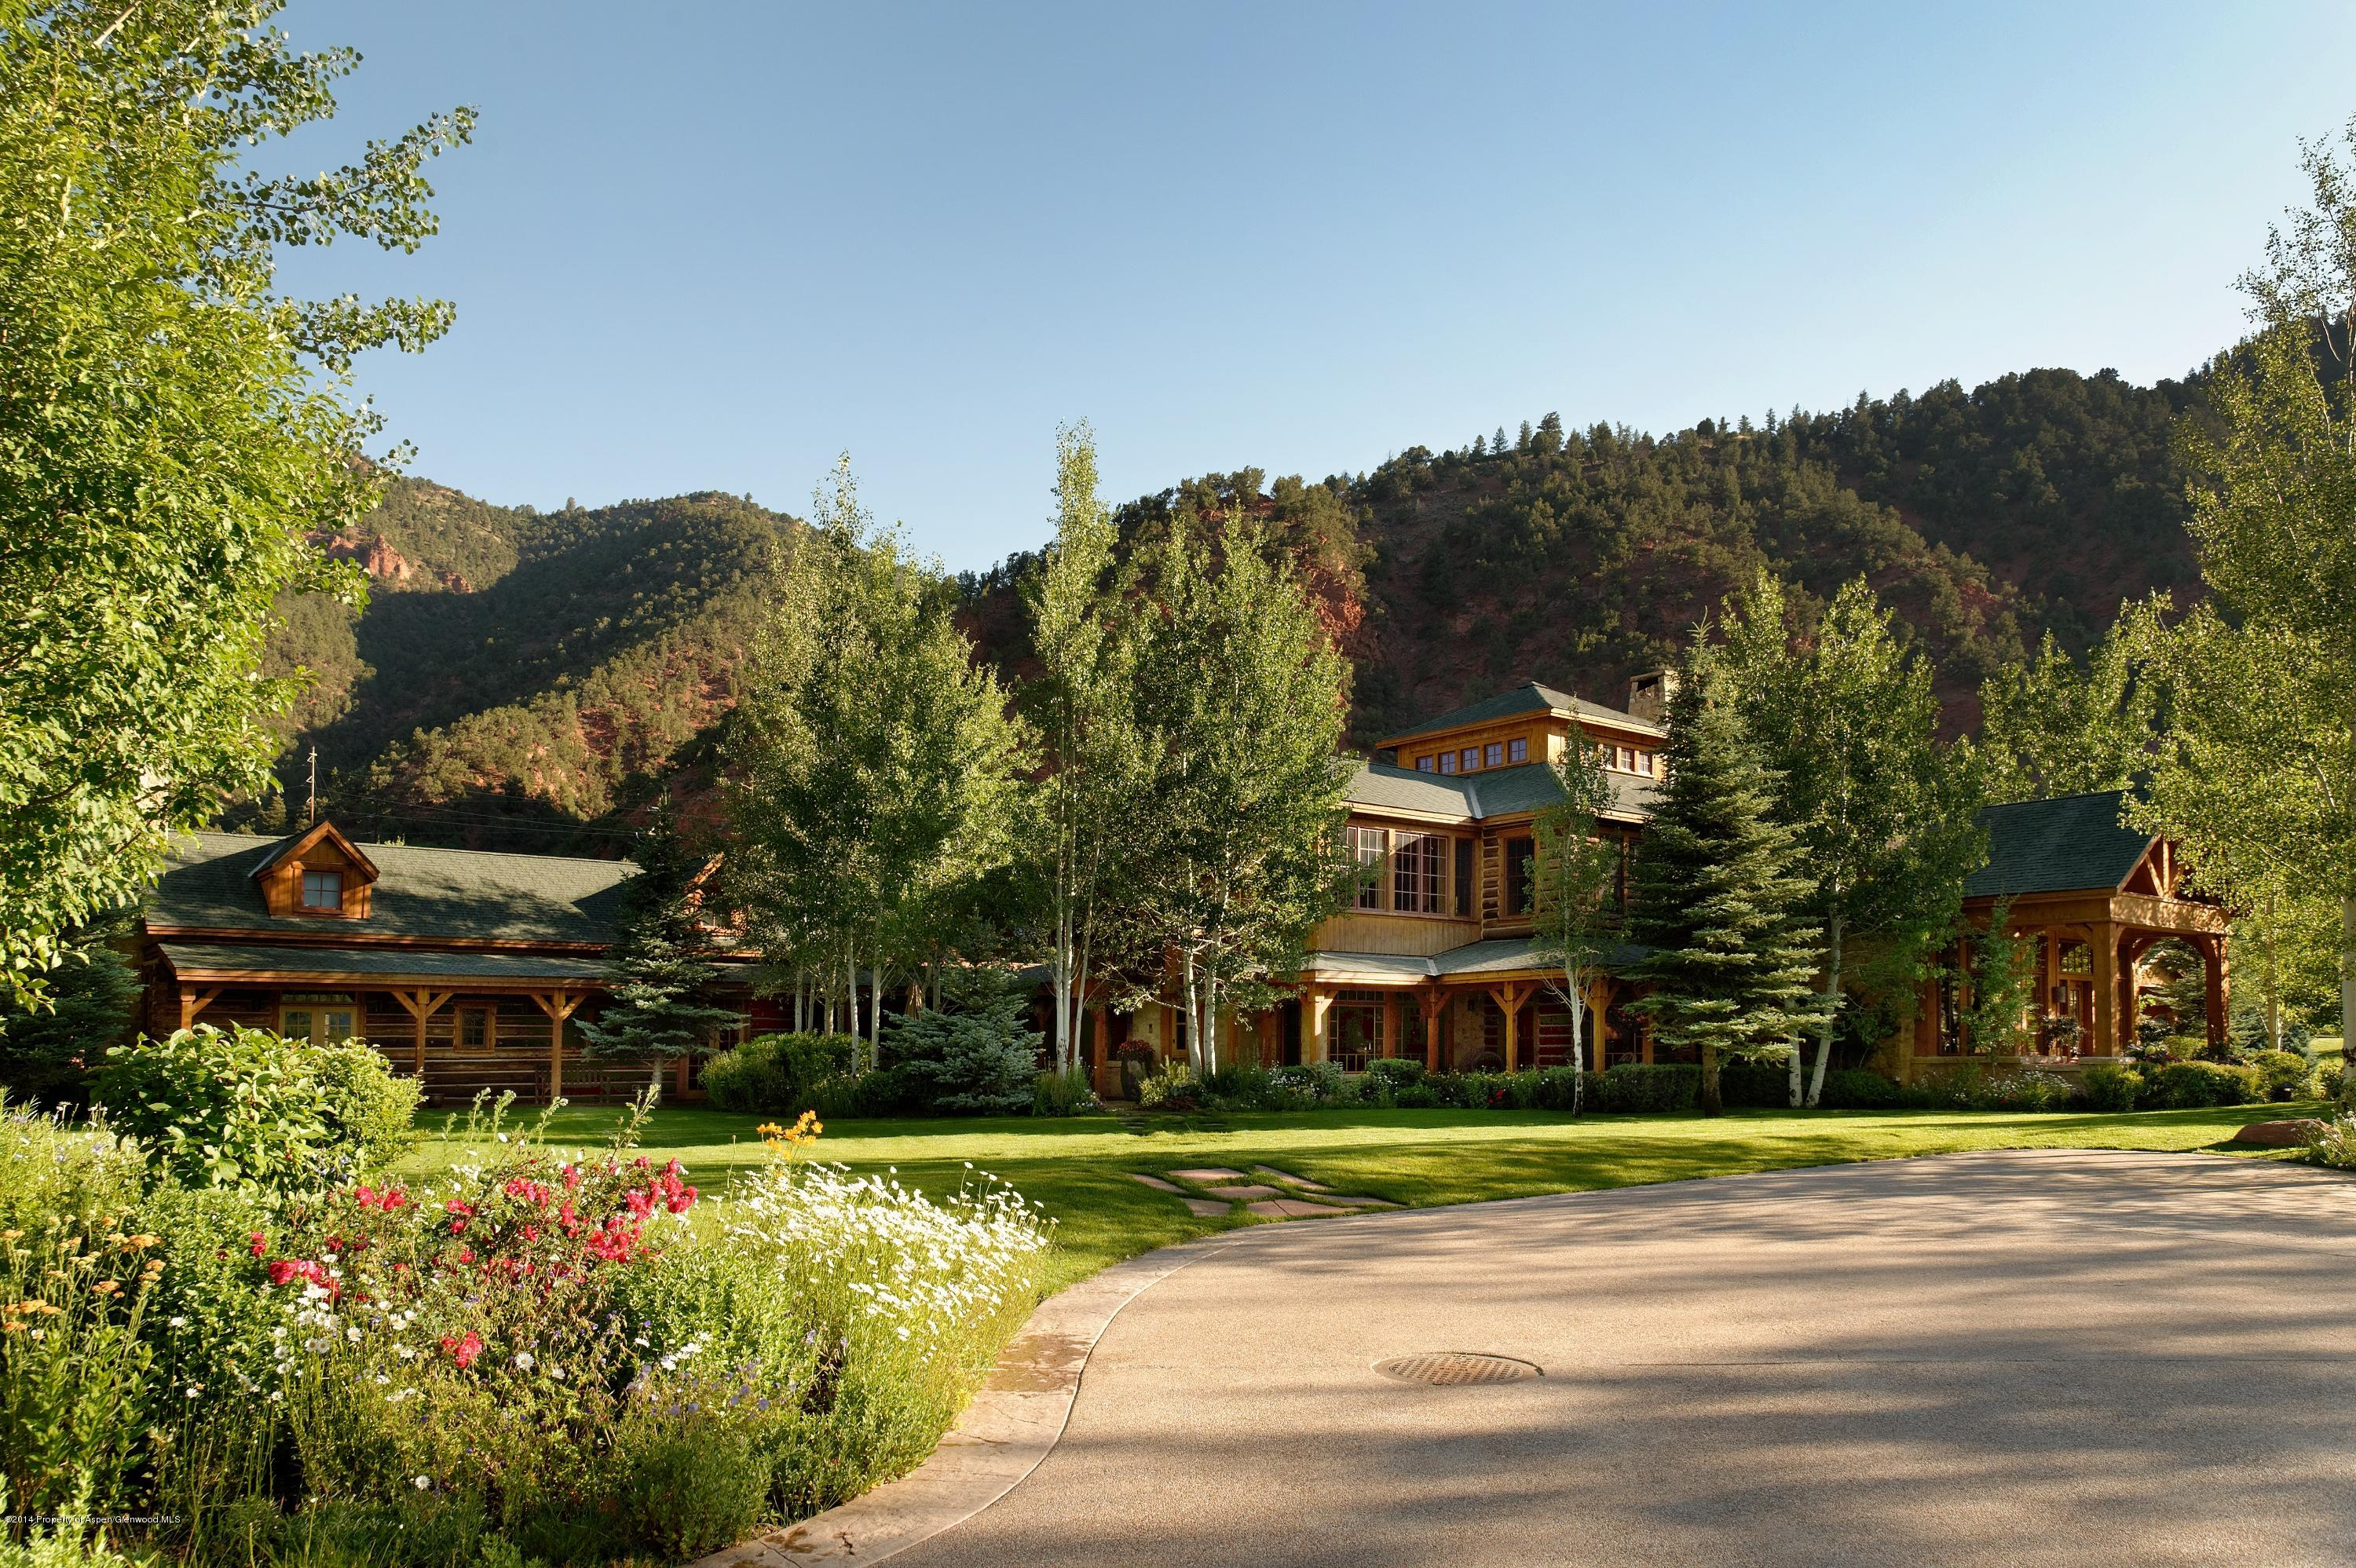 MLS# 135595 - 41 - 50 E River Ranch Road, Snowmass, CO 81654